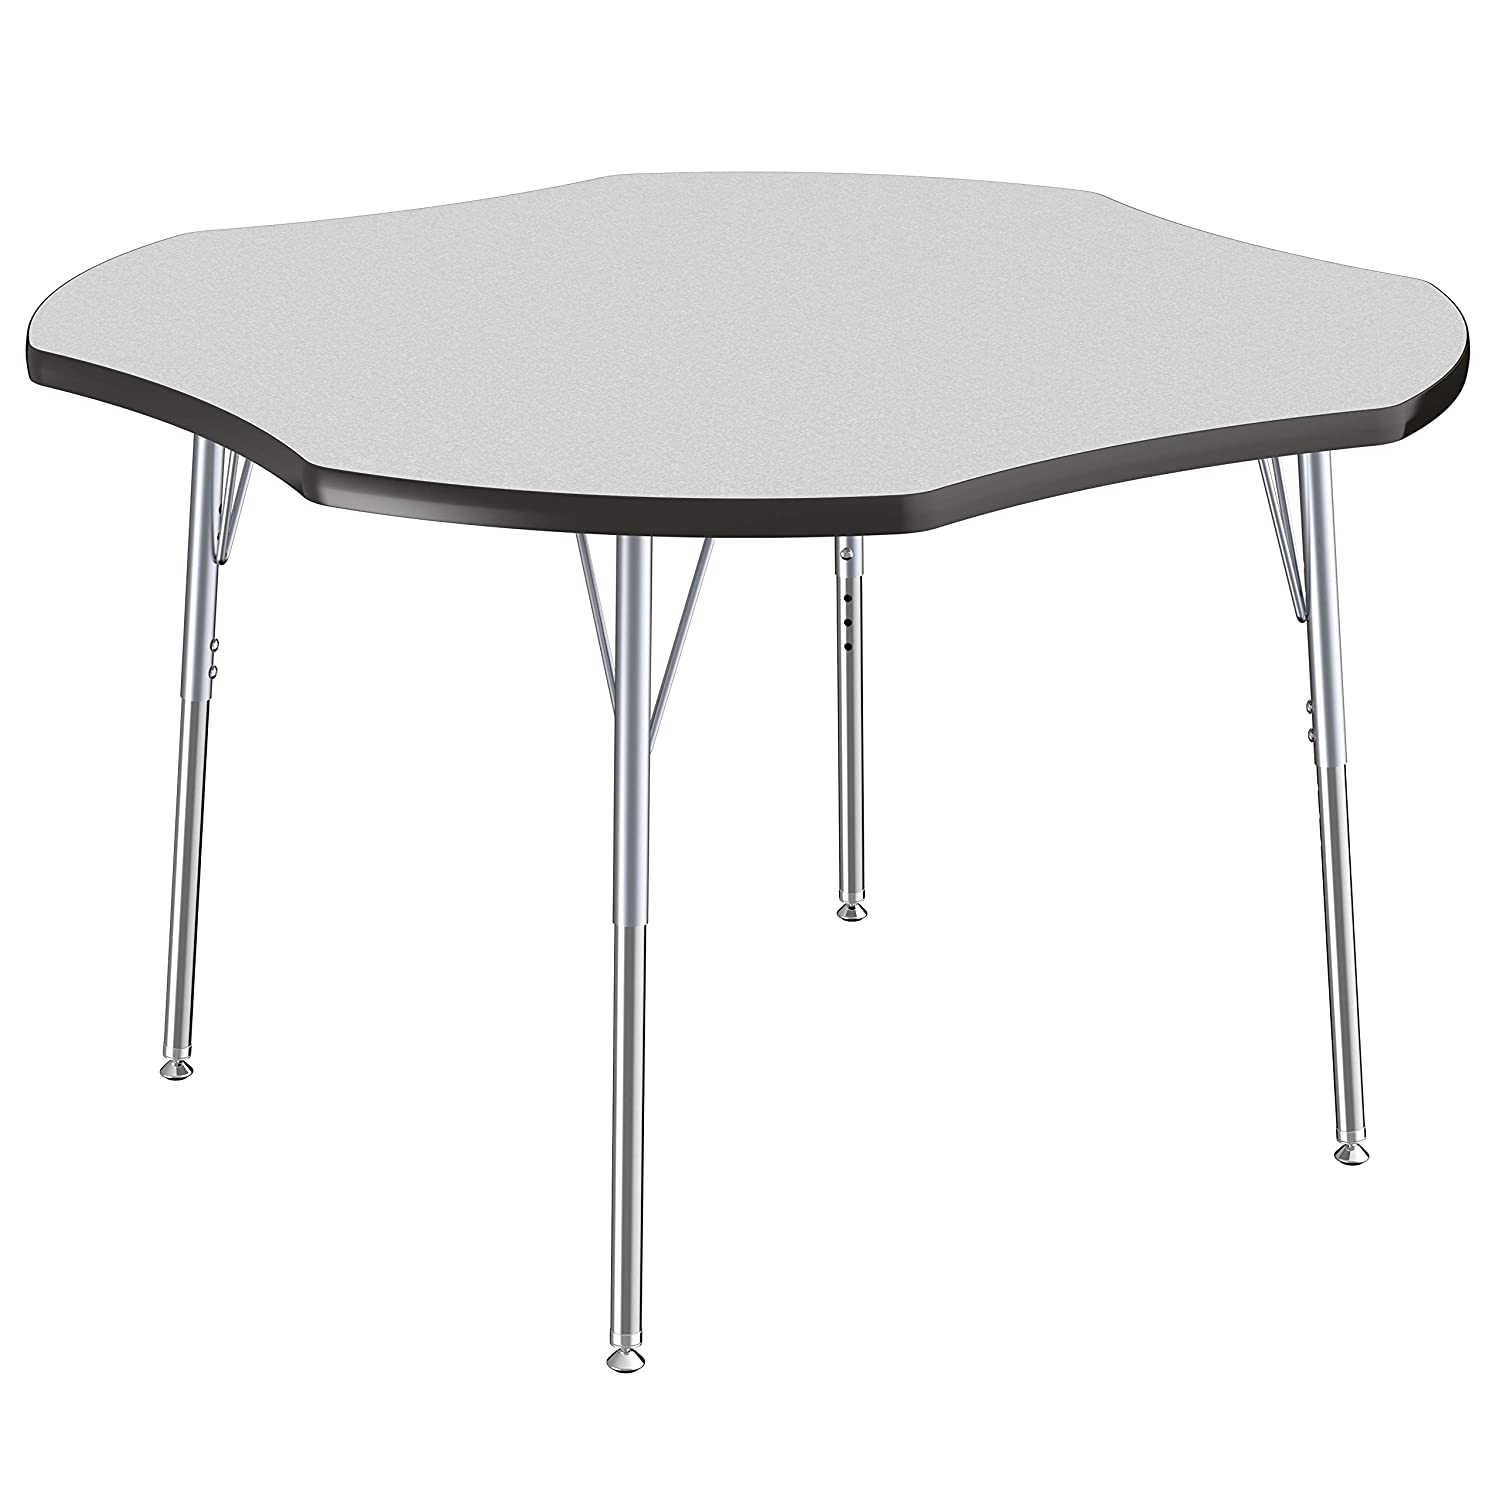 FDP Clover Premium Contour Activity School and Office Table Adjustable Height 19-30 inches Maple Top and Light Gray Edge 48 x 48 inch Standard Legs with Swivel Glides for Collaborative Spaces